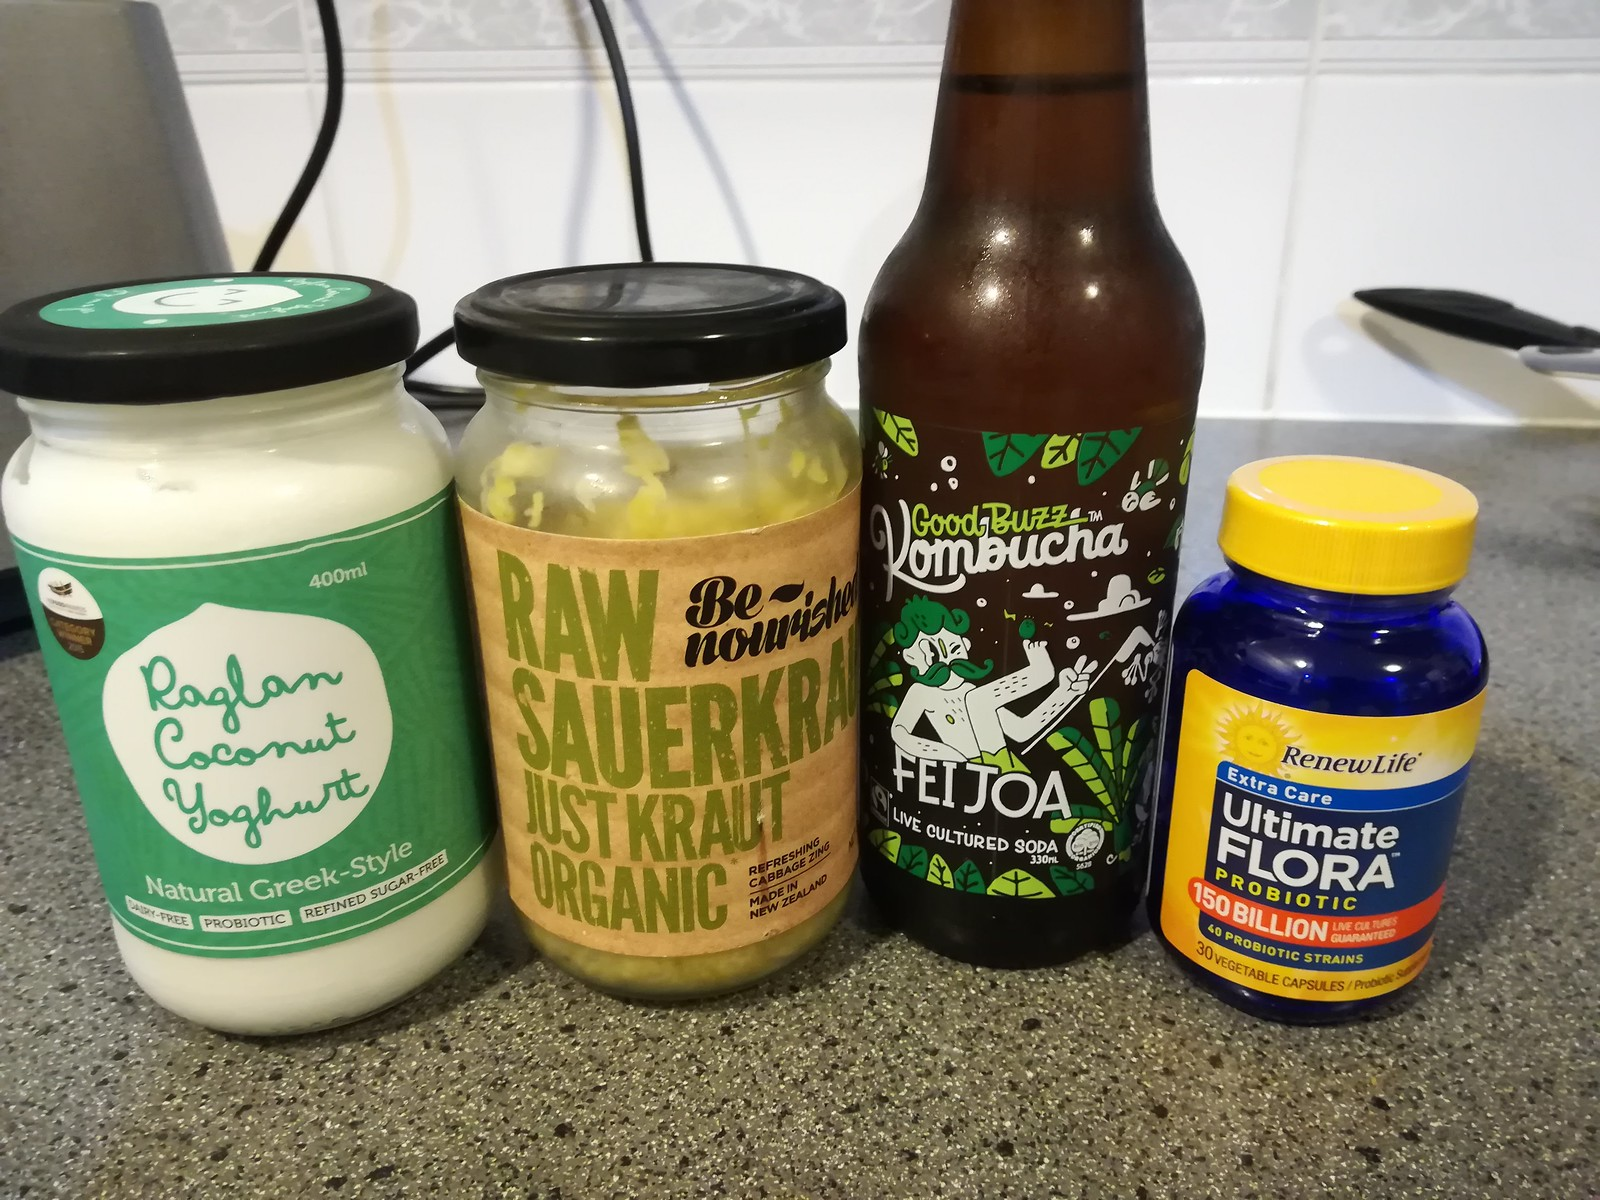 How To Do A 10 Day Juice Fast: A Monster Guide - Bren on The Road